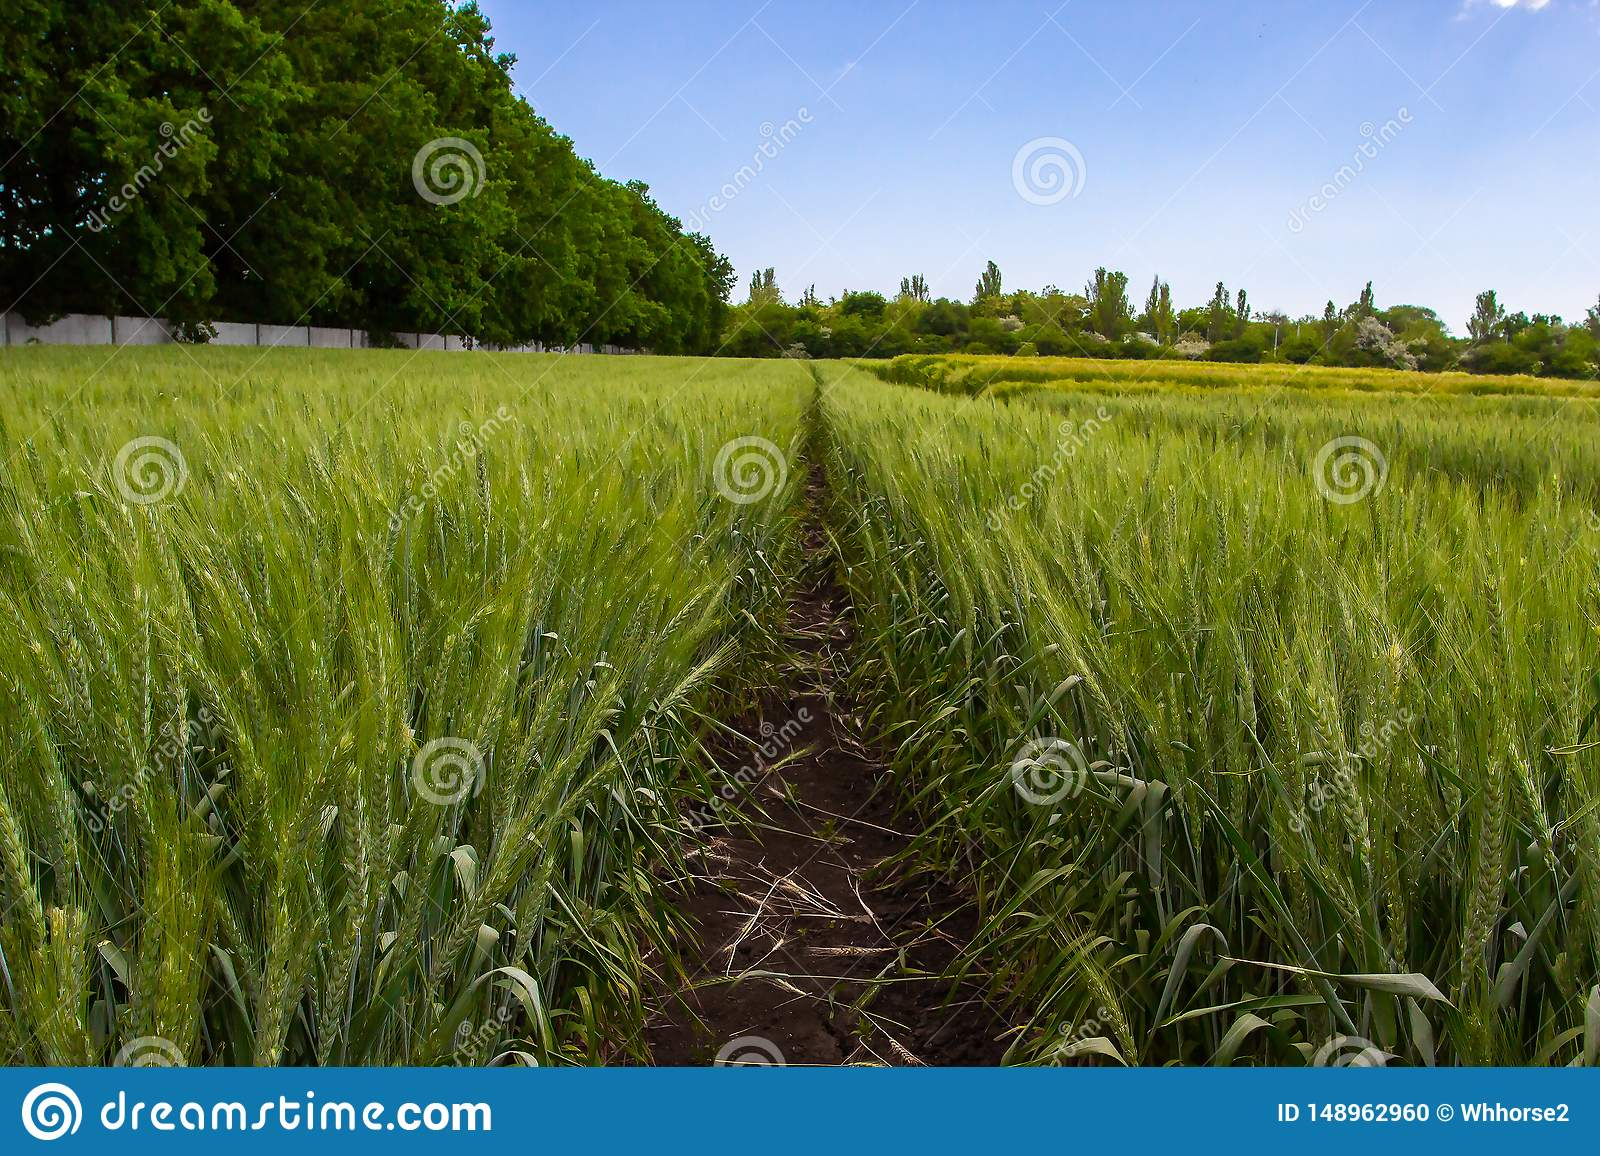 Green wheat field surrounded by forest under blue sky